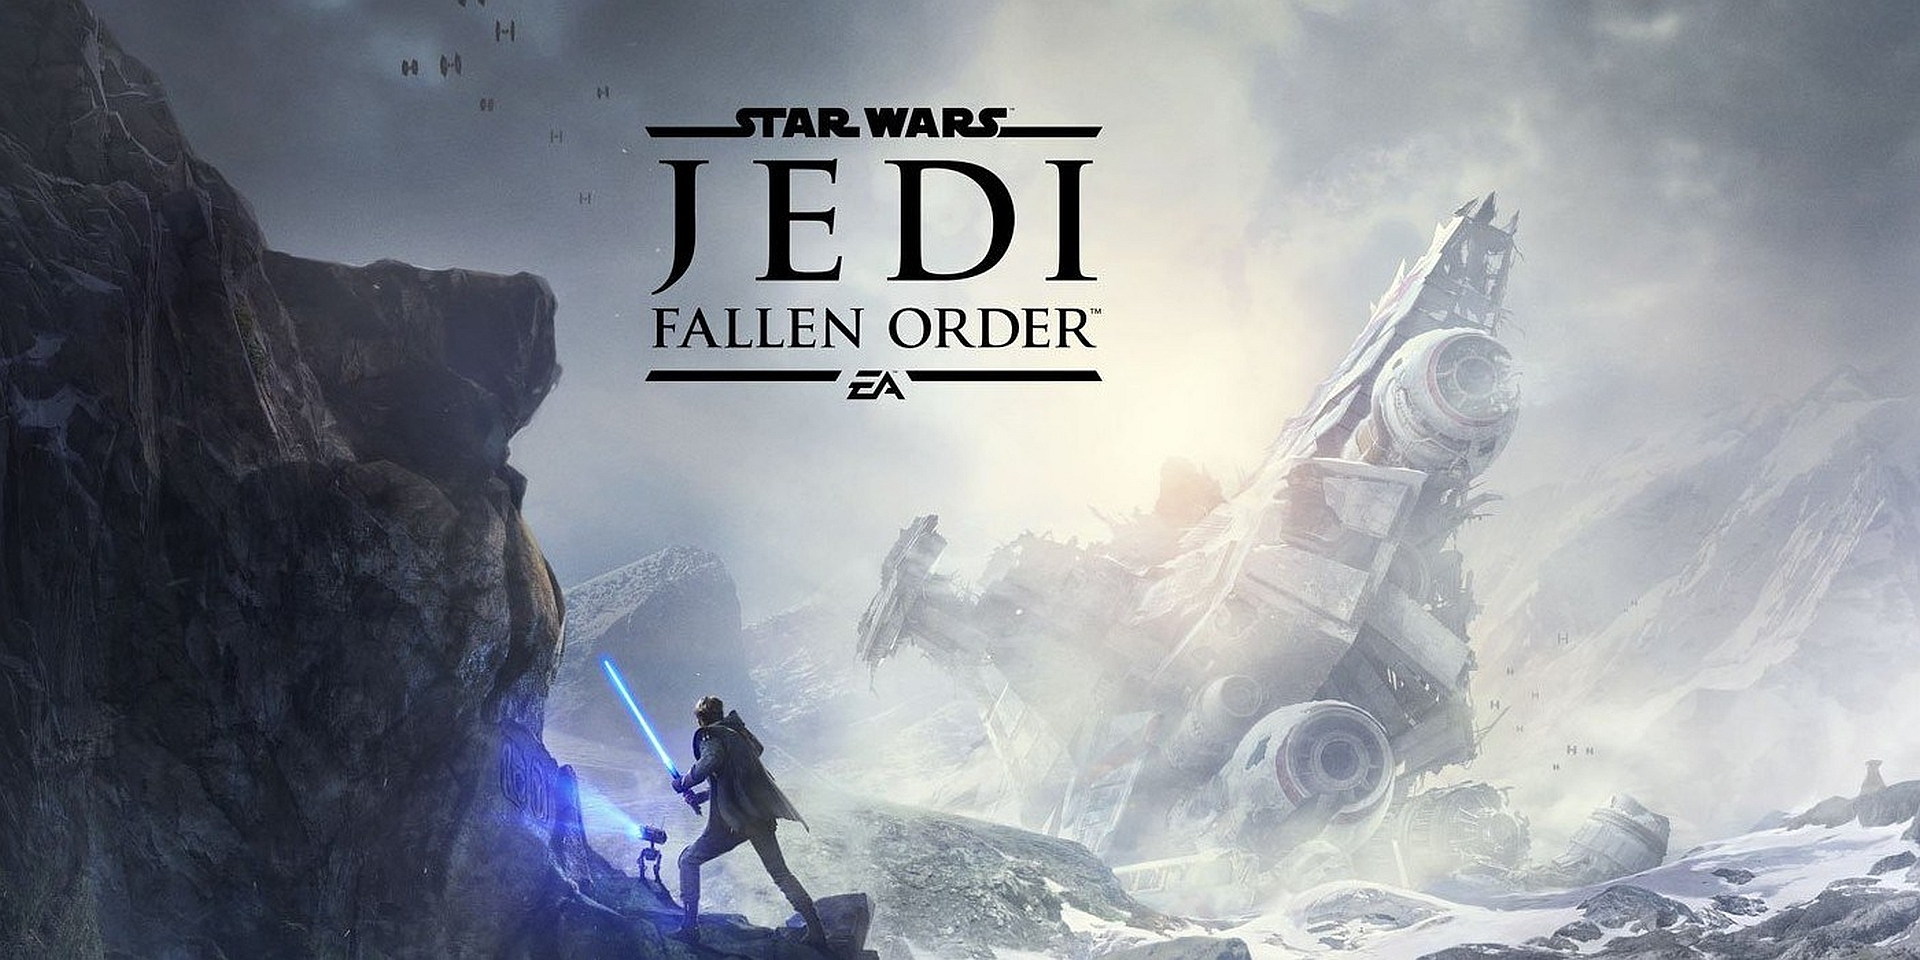 Star Wars Jedi Fallen Order Ps4 Pro Performance Mode Keeps Steady 60 Fps Most Of The Time